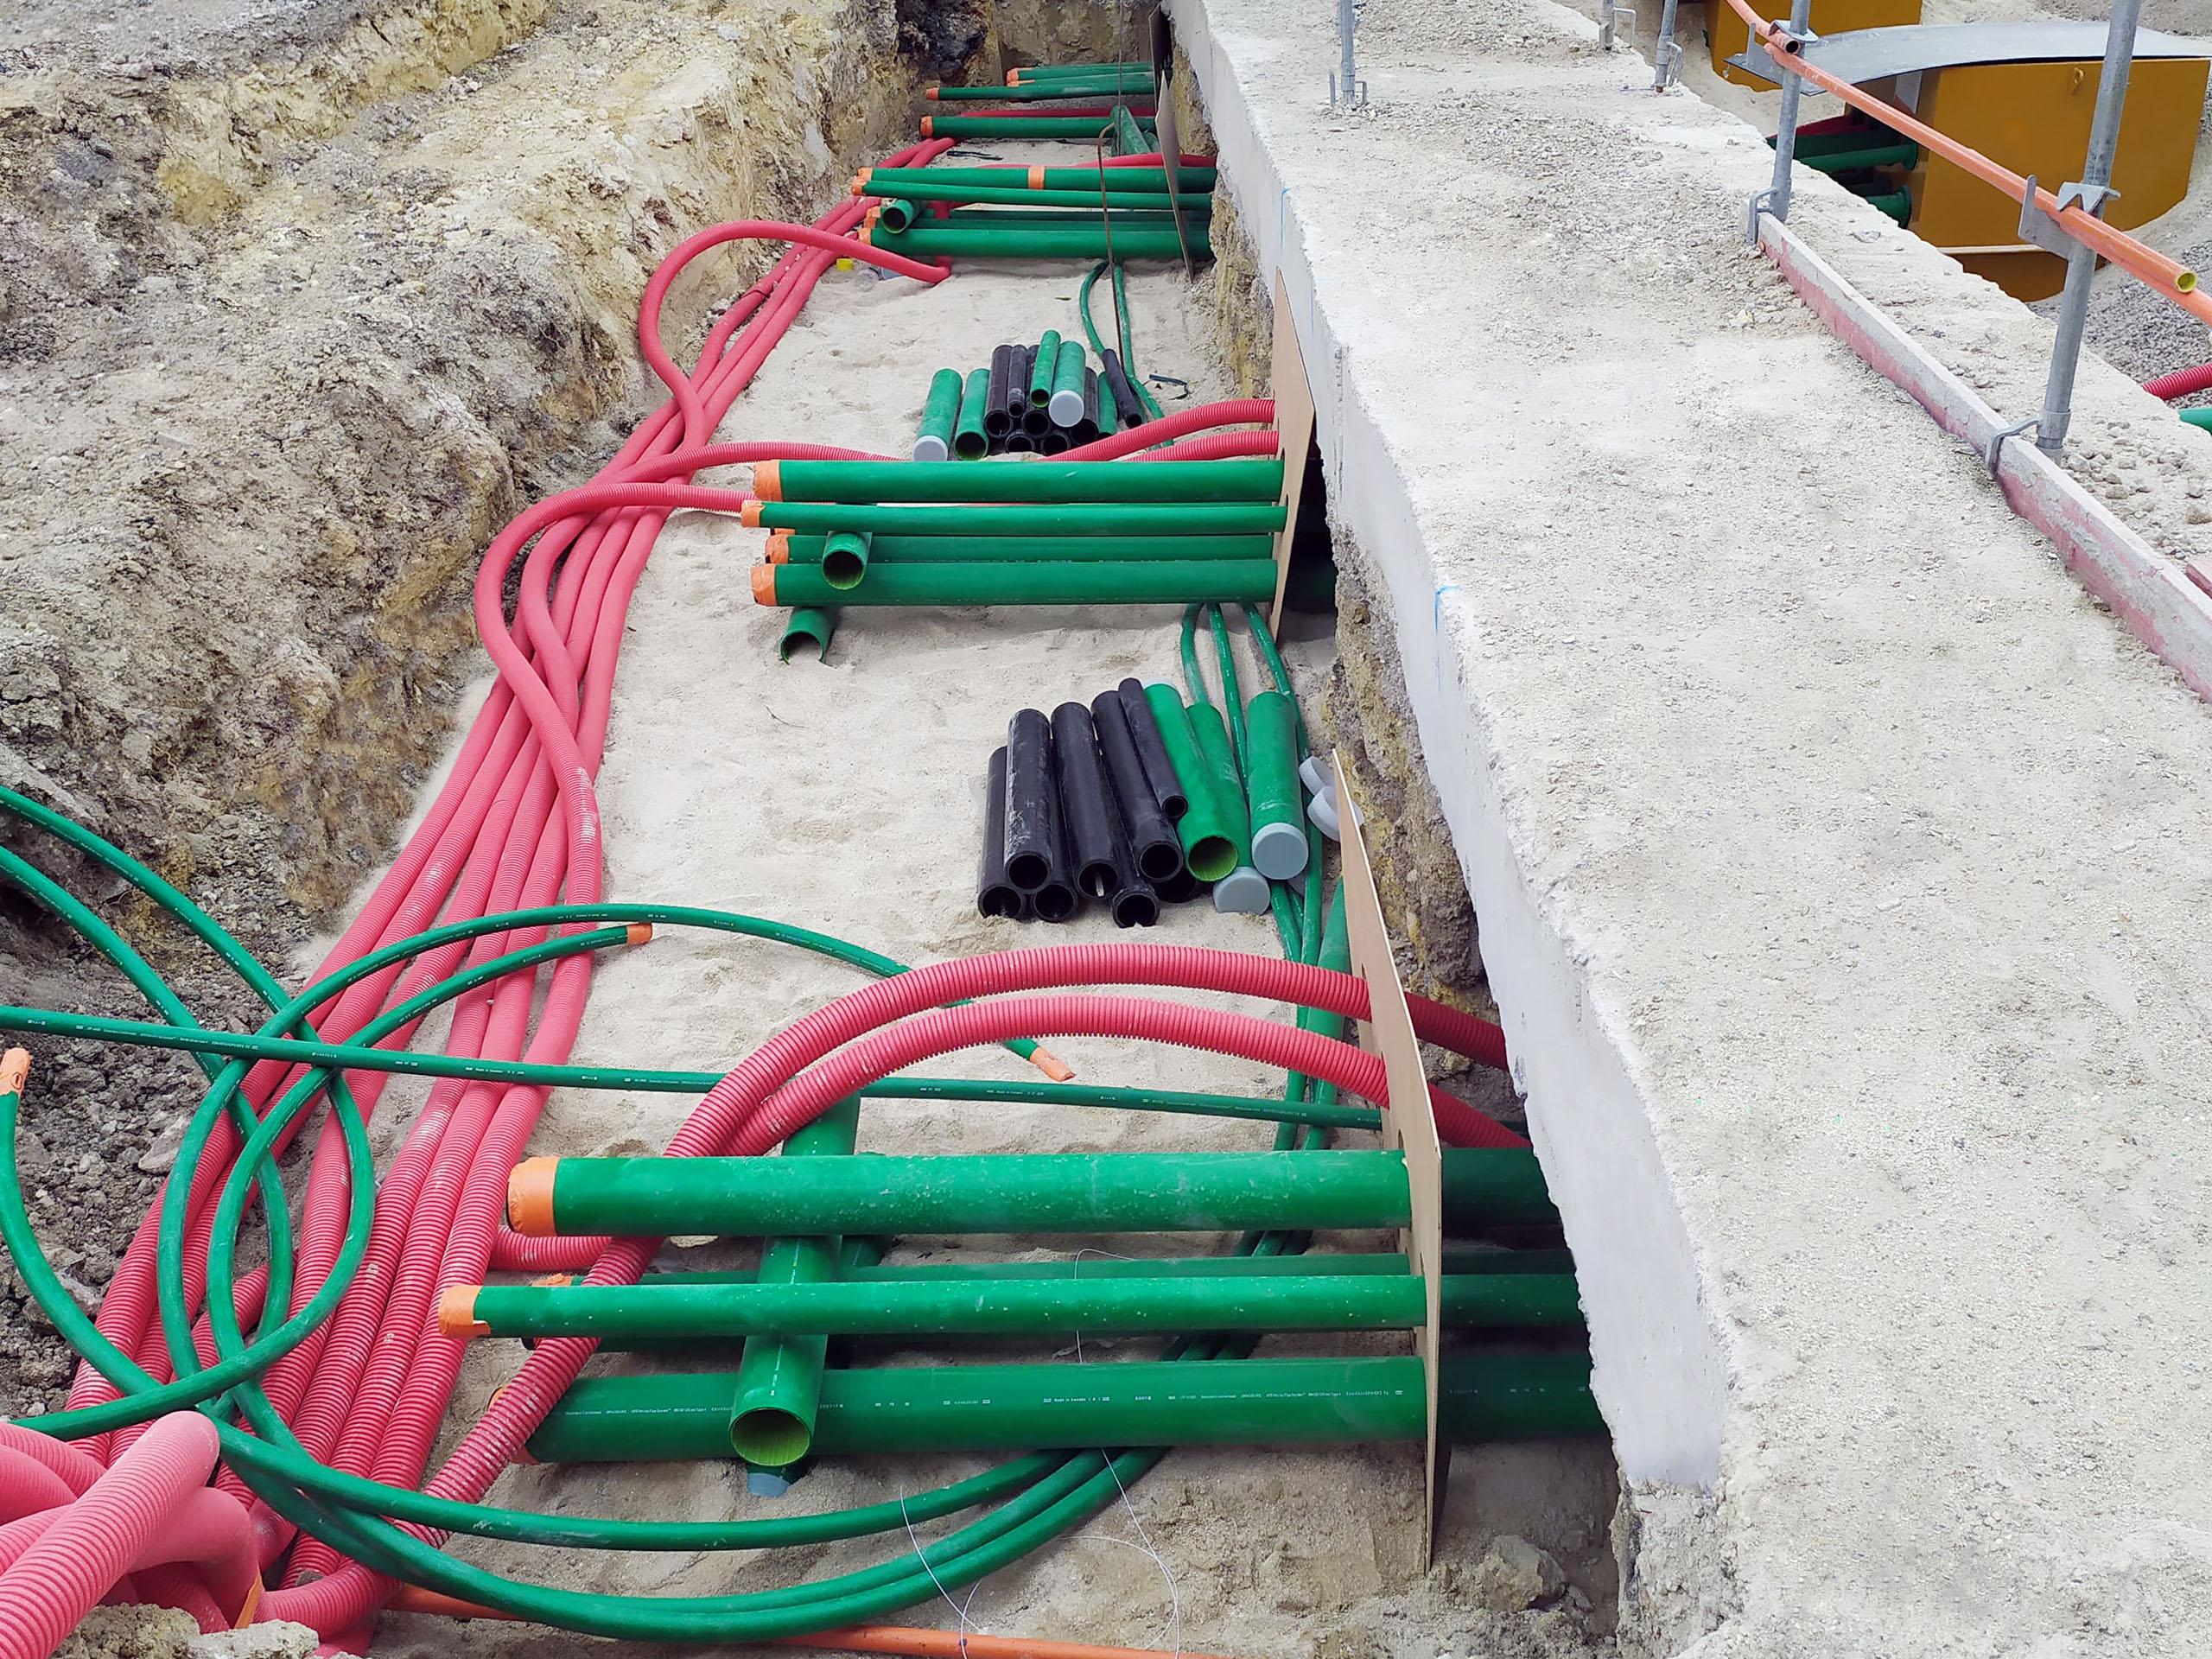 KPS piping is corrosion-free